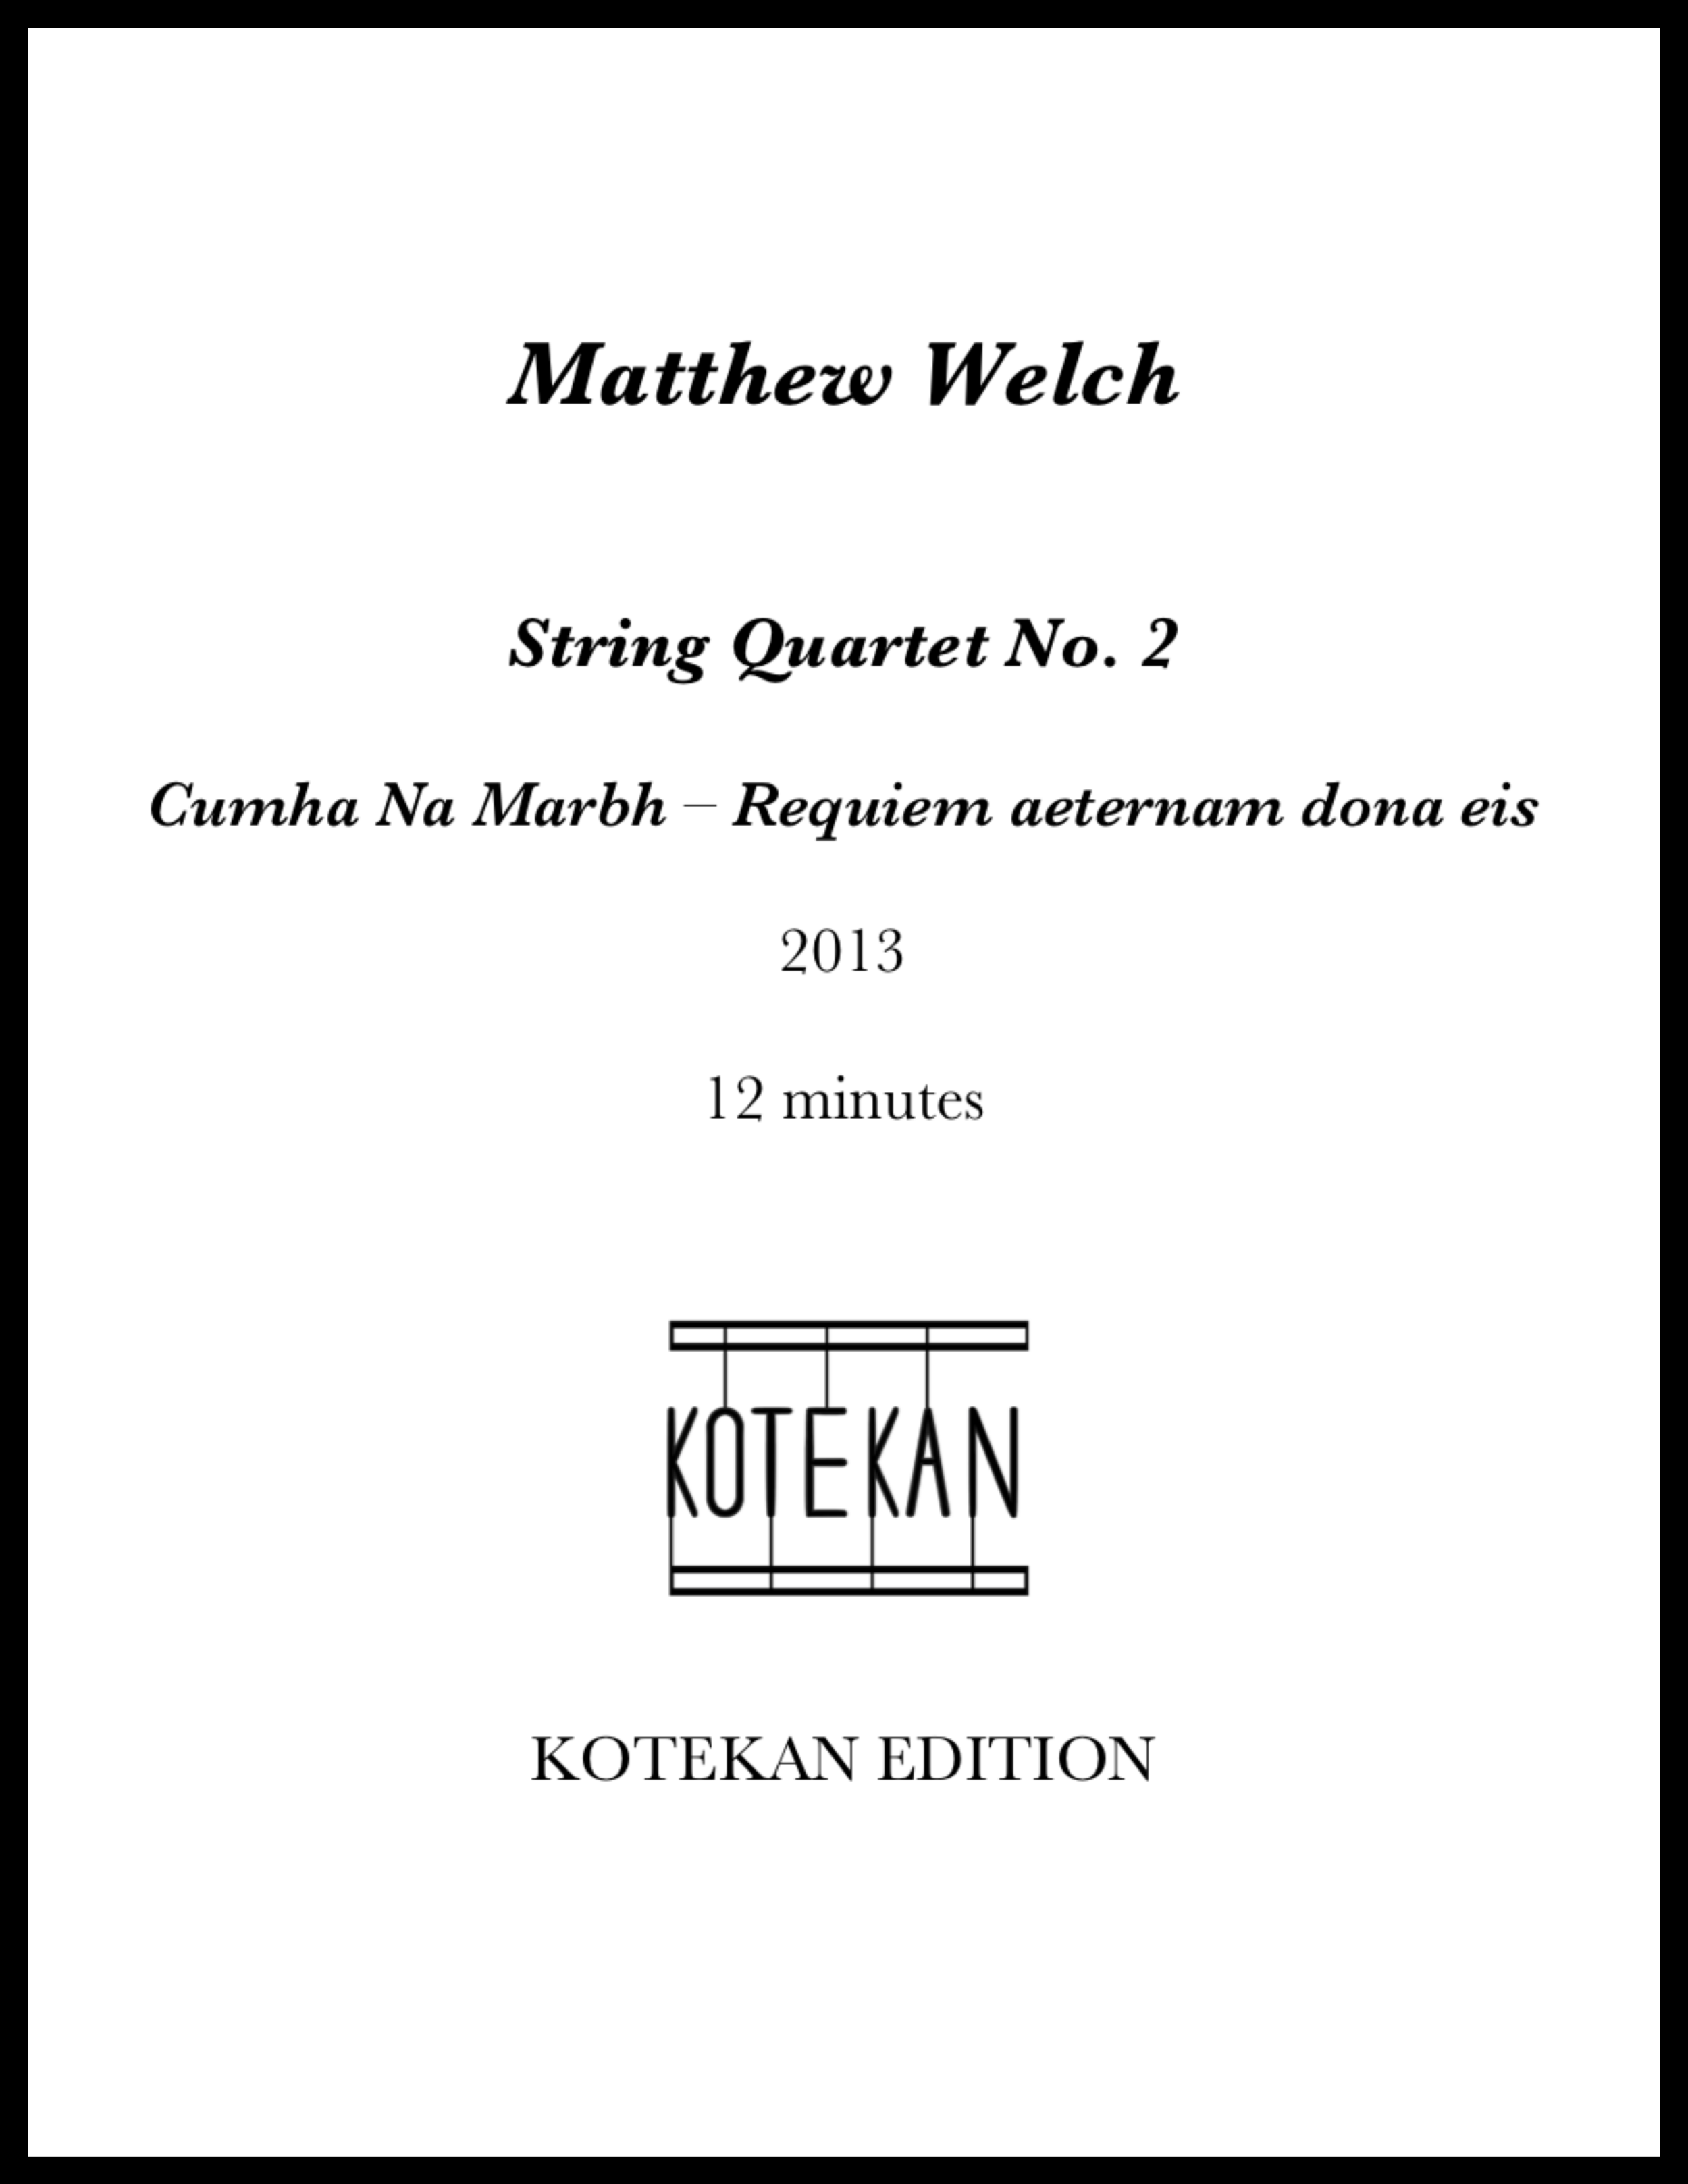 Cumha Na Marbh - Requiem aeternam dona eis (String Quartet #2) photo.png